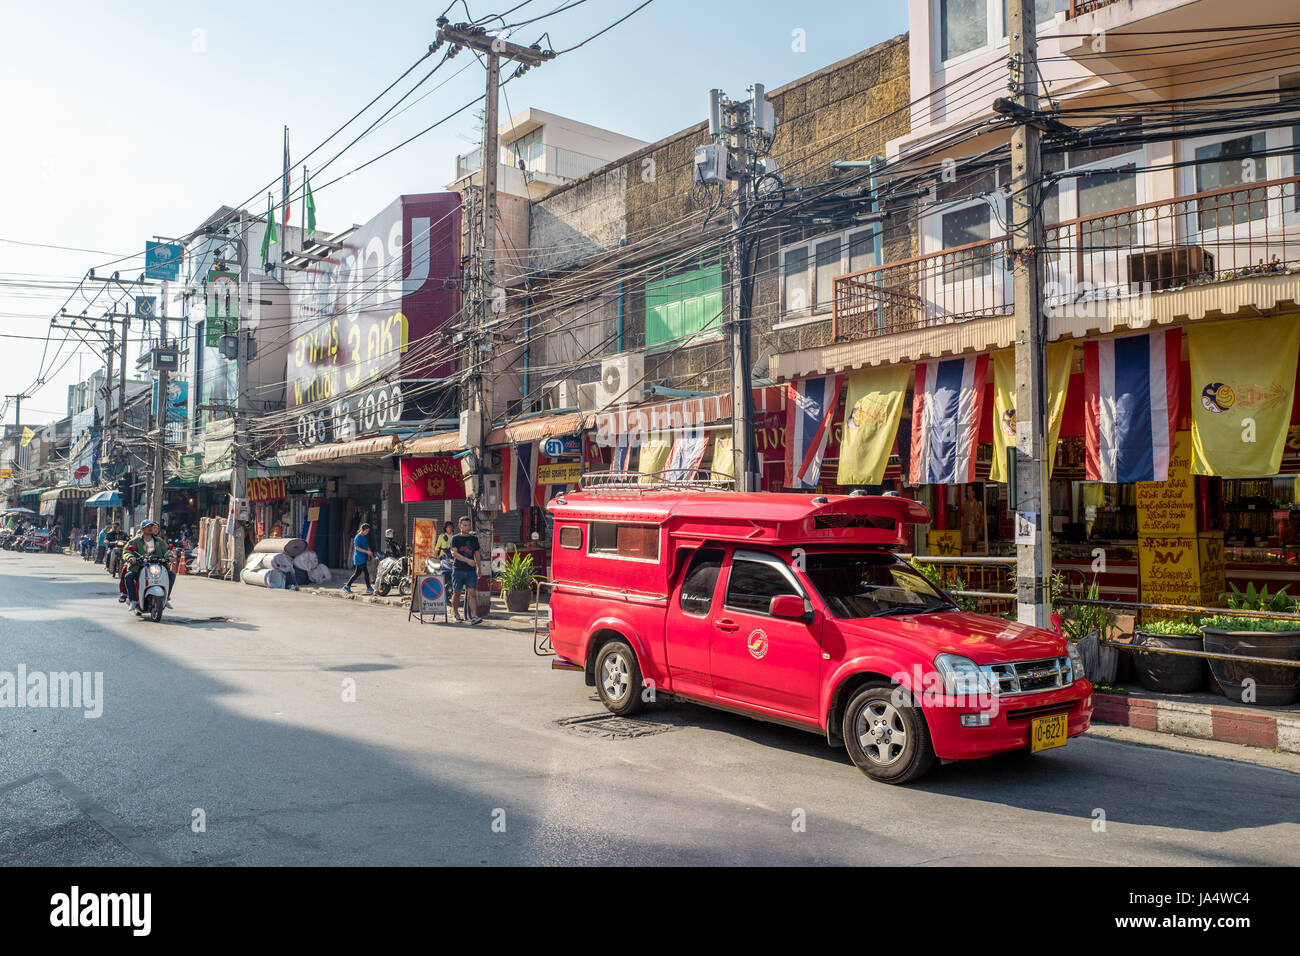 Traditional red songthaew taxi on a street in Chiang Mai. This is the largest city in northern Thailand. - Stock Image